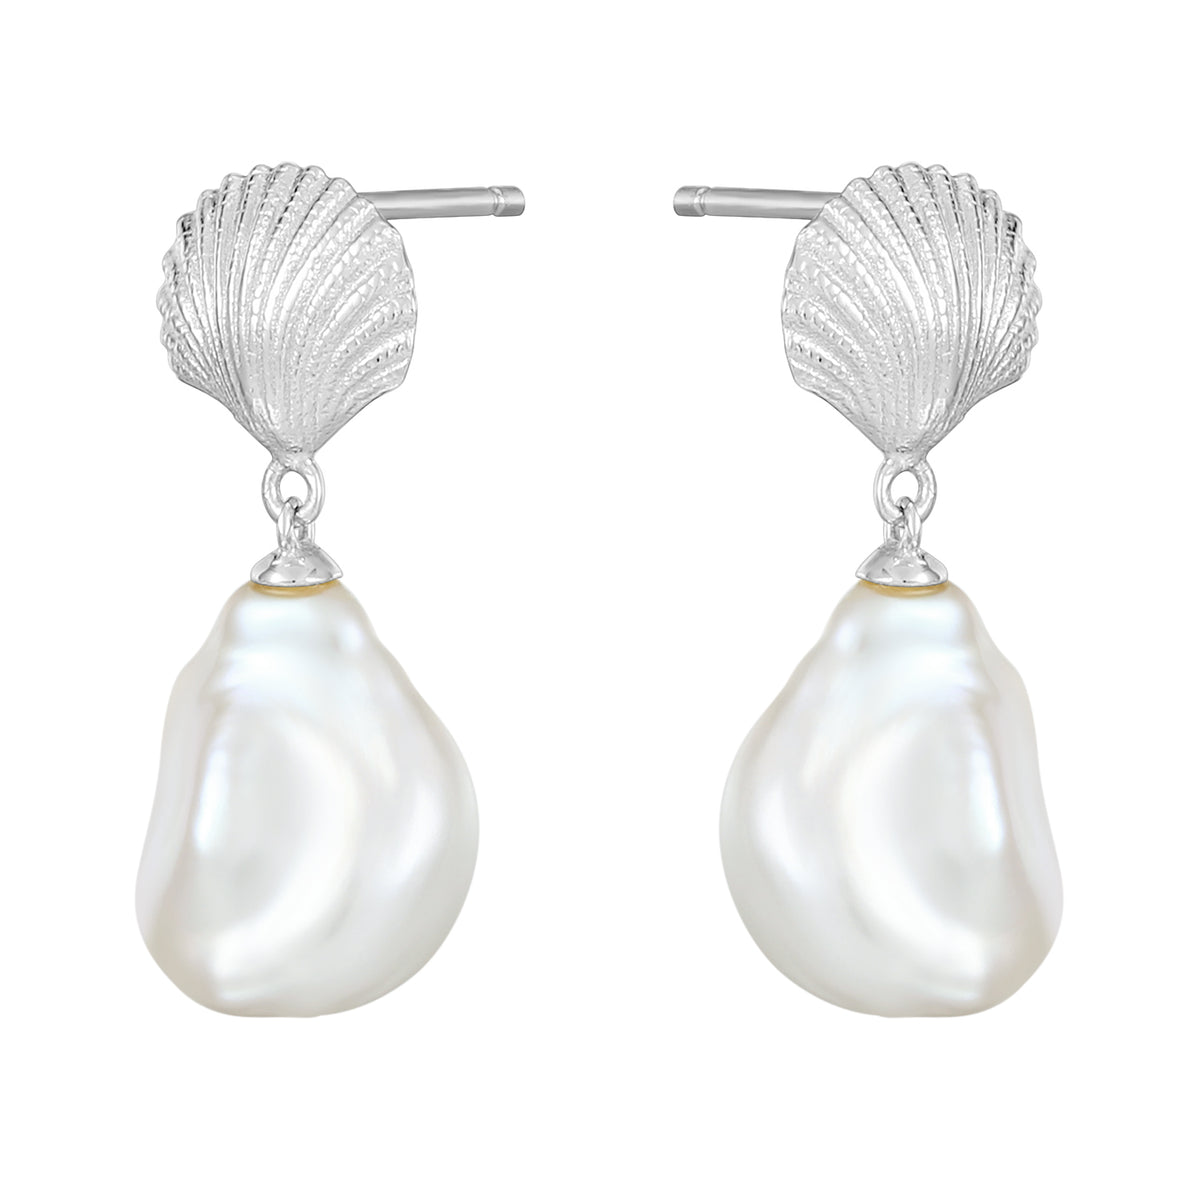 Carmenta | Seychelles Earrings | 925 Silver | Organic White Pearl | White Rhodium Plated